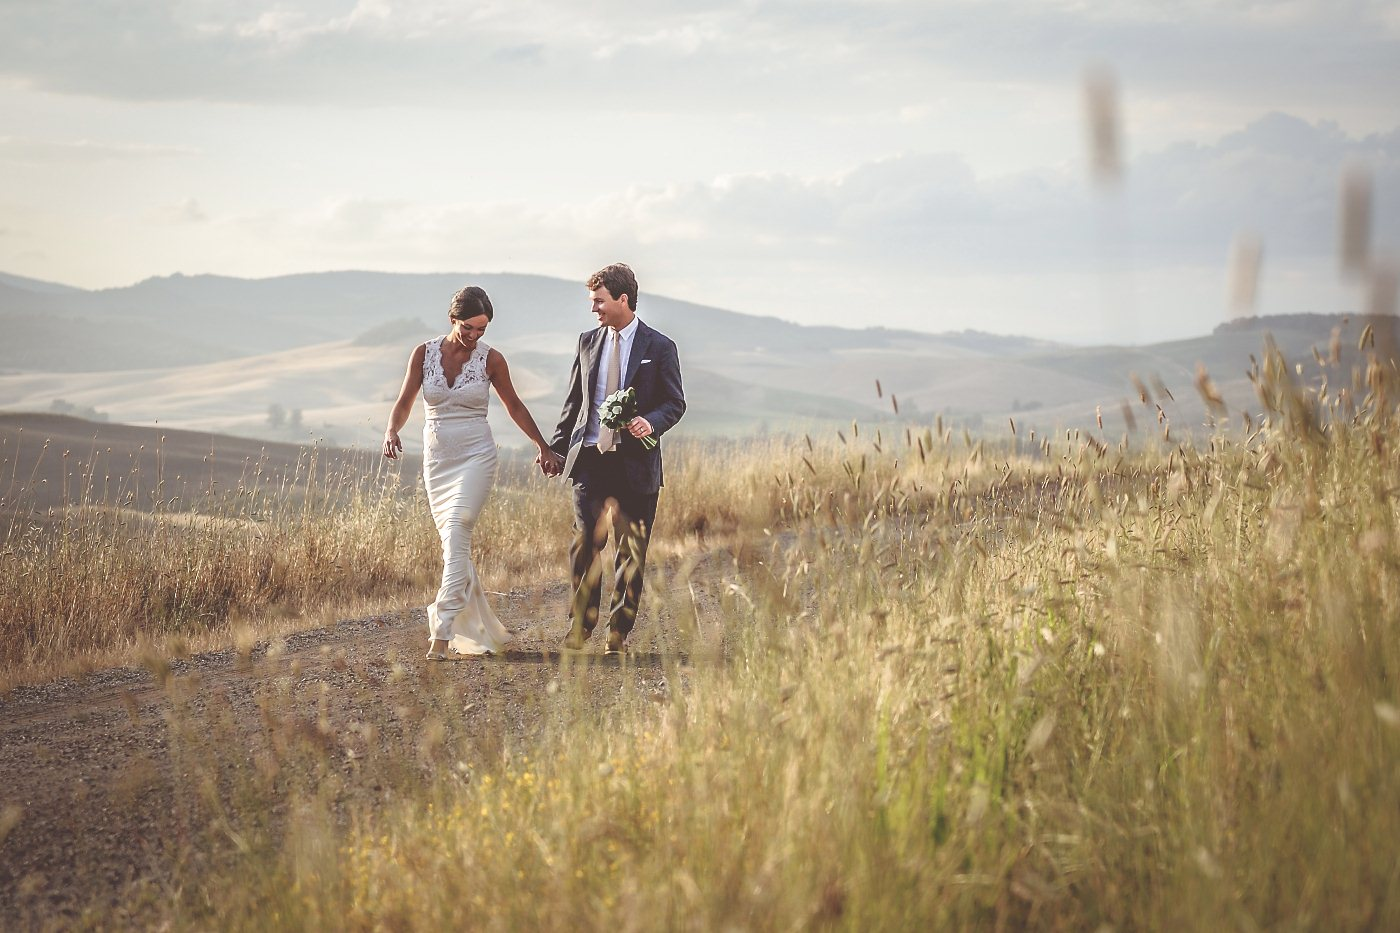 wedding photo castiglion del bosco montalcino_19.jpg